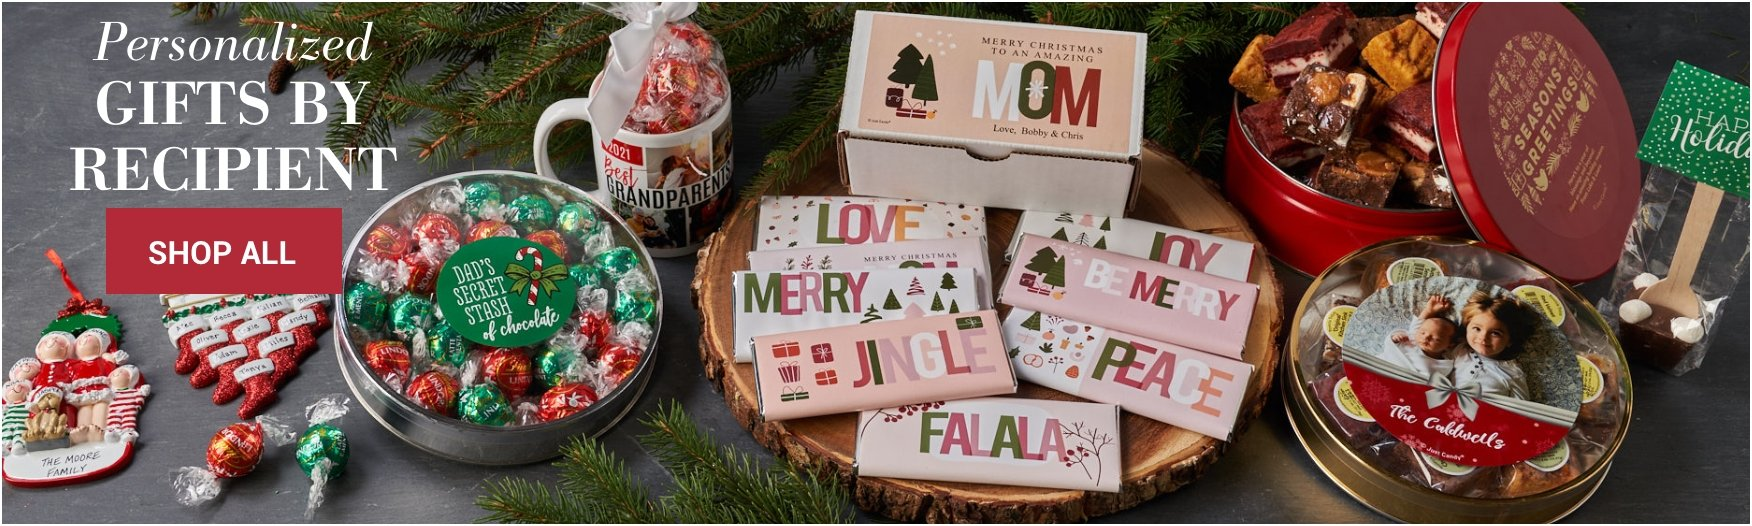 Shop Personalized Holiday Gifts by Recipients